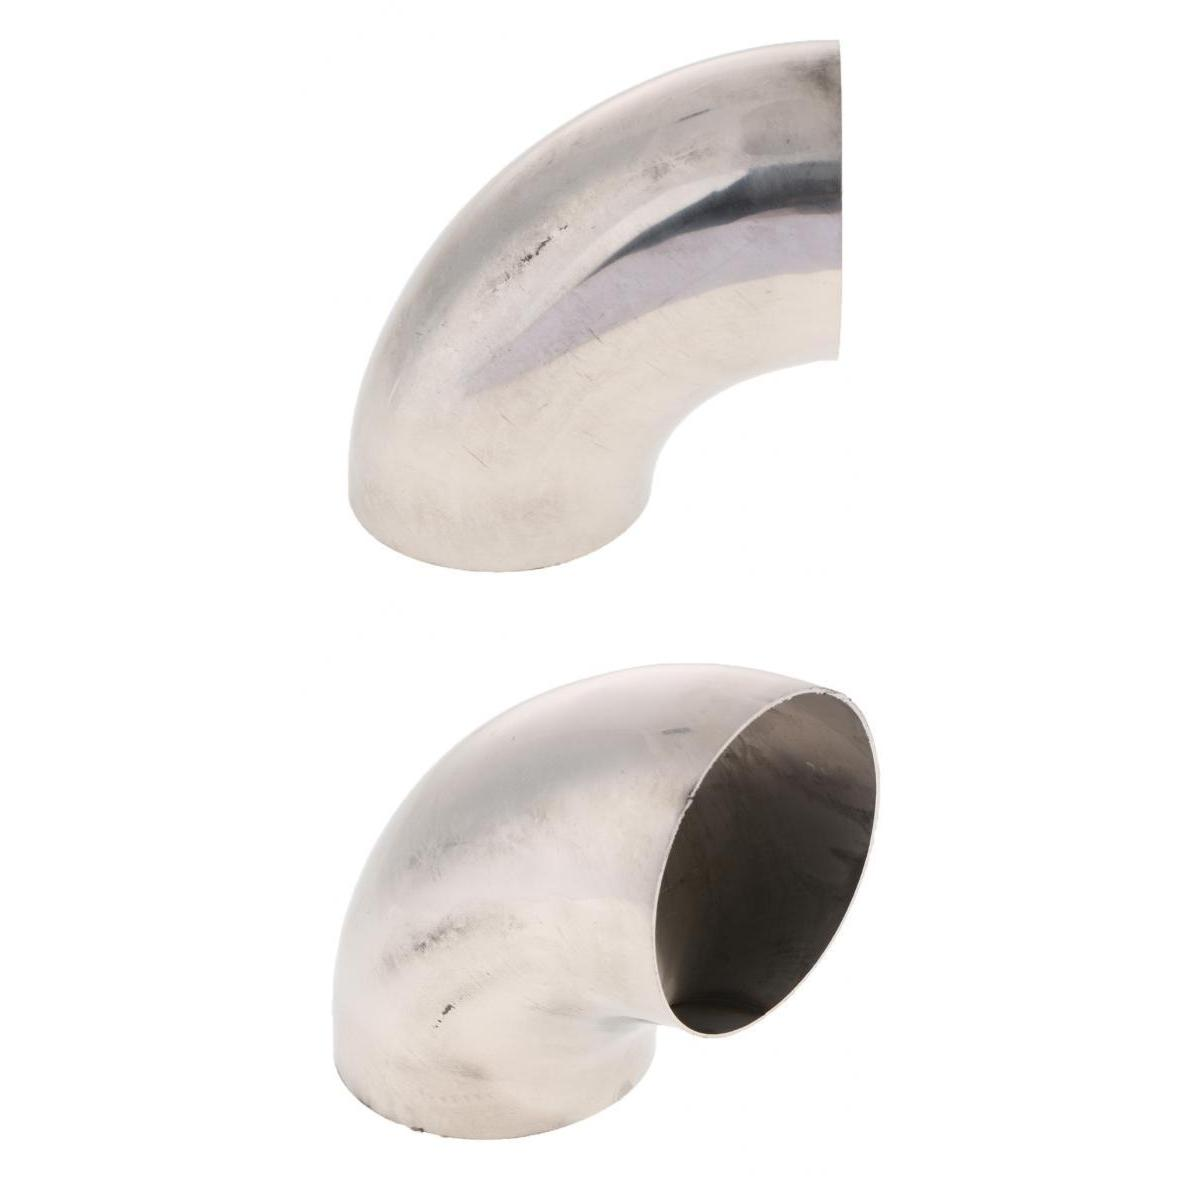 Perfeclan Stainless Steel Mandrel Exhaust Bends Tube Elbows 90 Degree 76MM+63MM OD 2.5+3 Inch